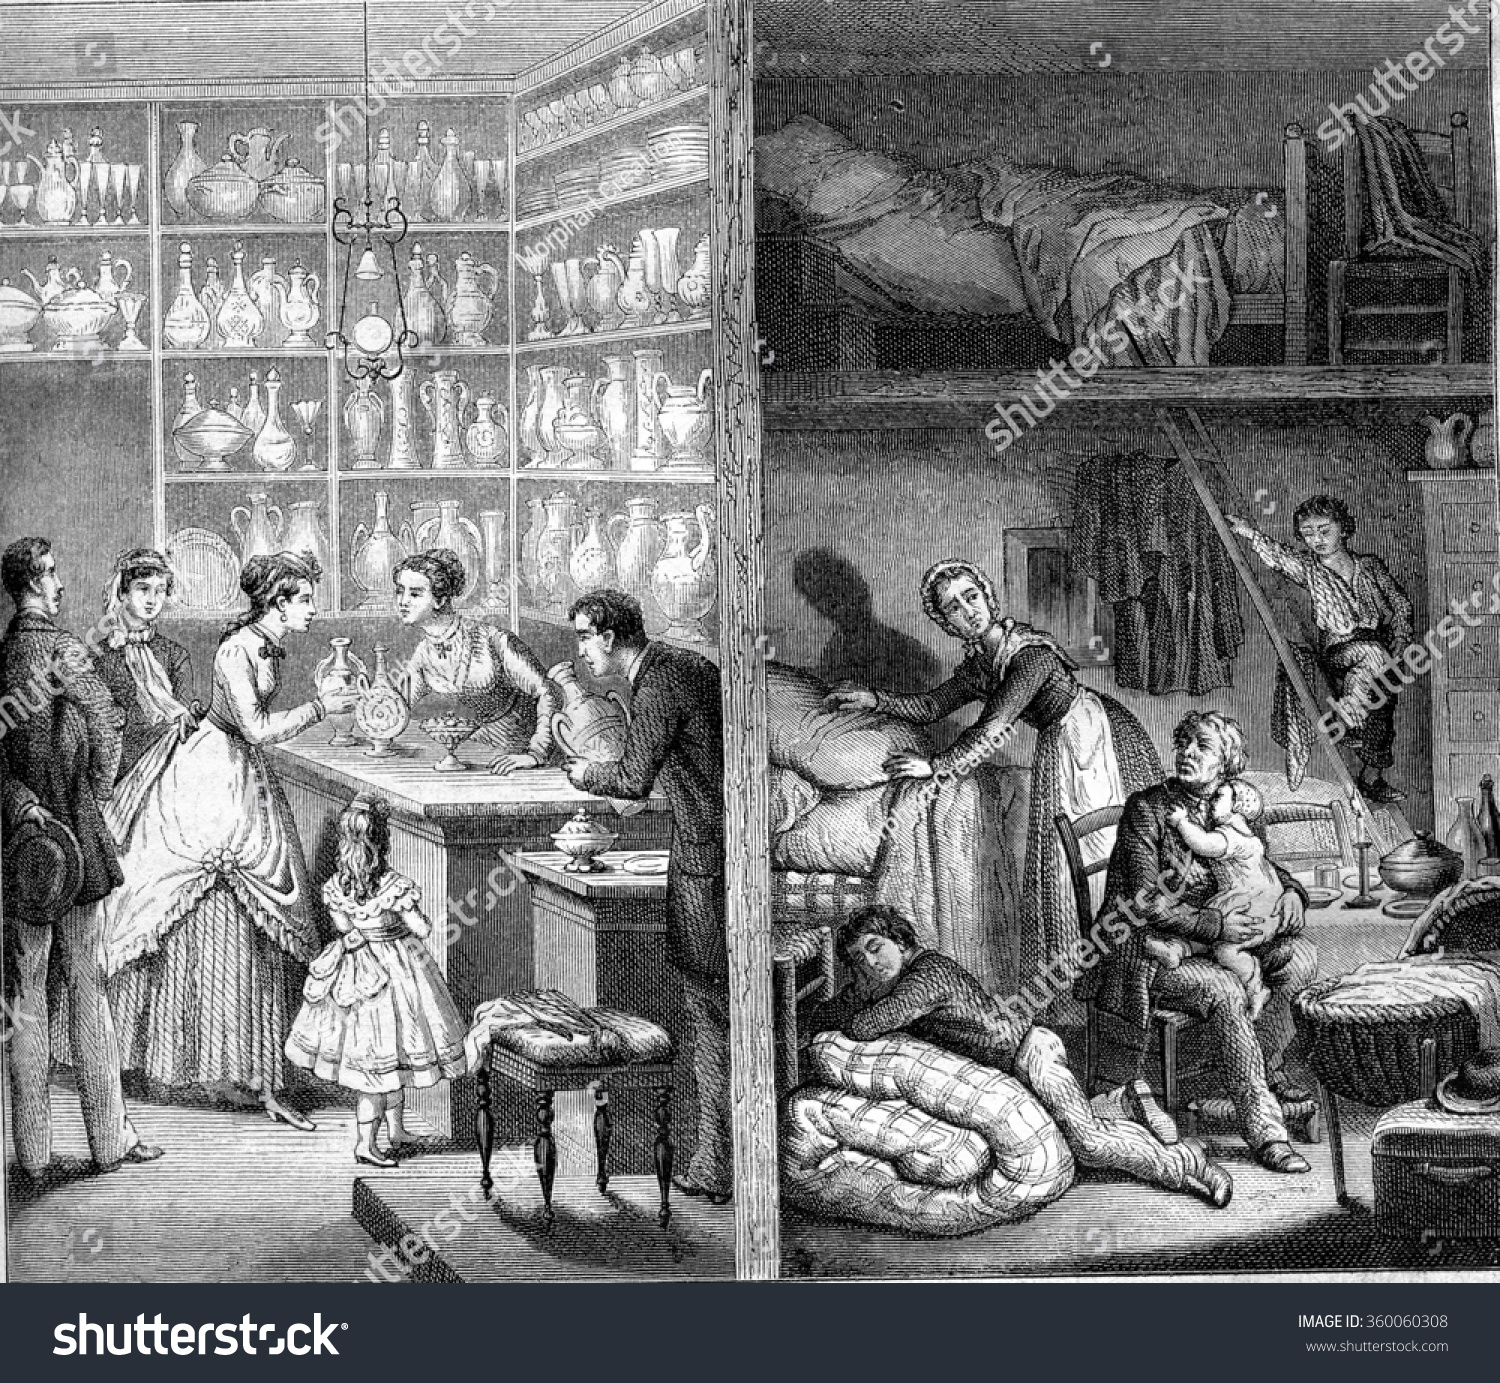 shop back shop paris vintage engraved stock illustration 360060308 shutterstock. Black Bedroom Furniture Sets. Home Design Ideas